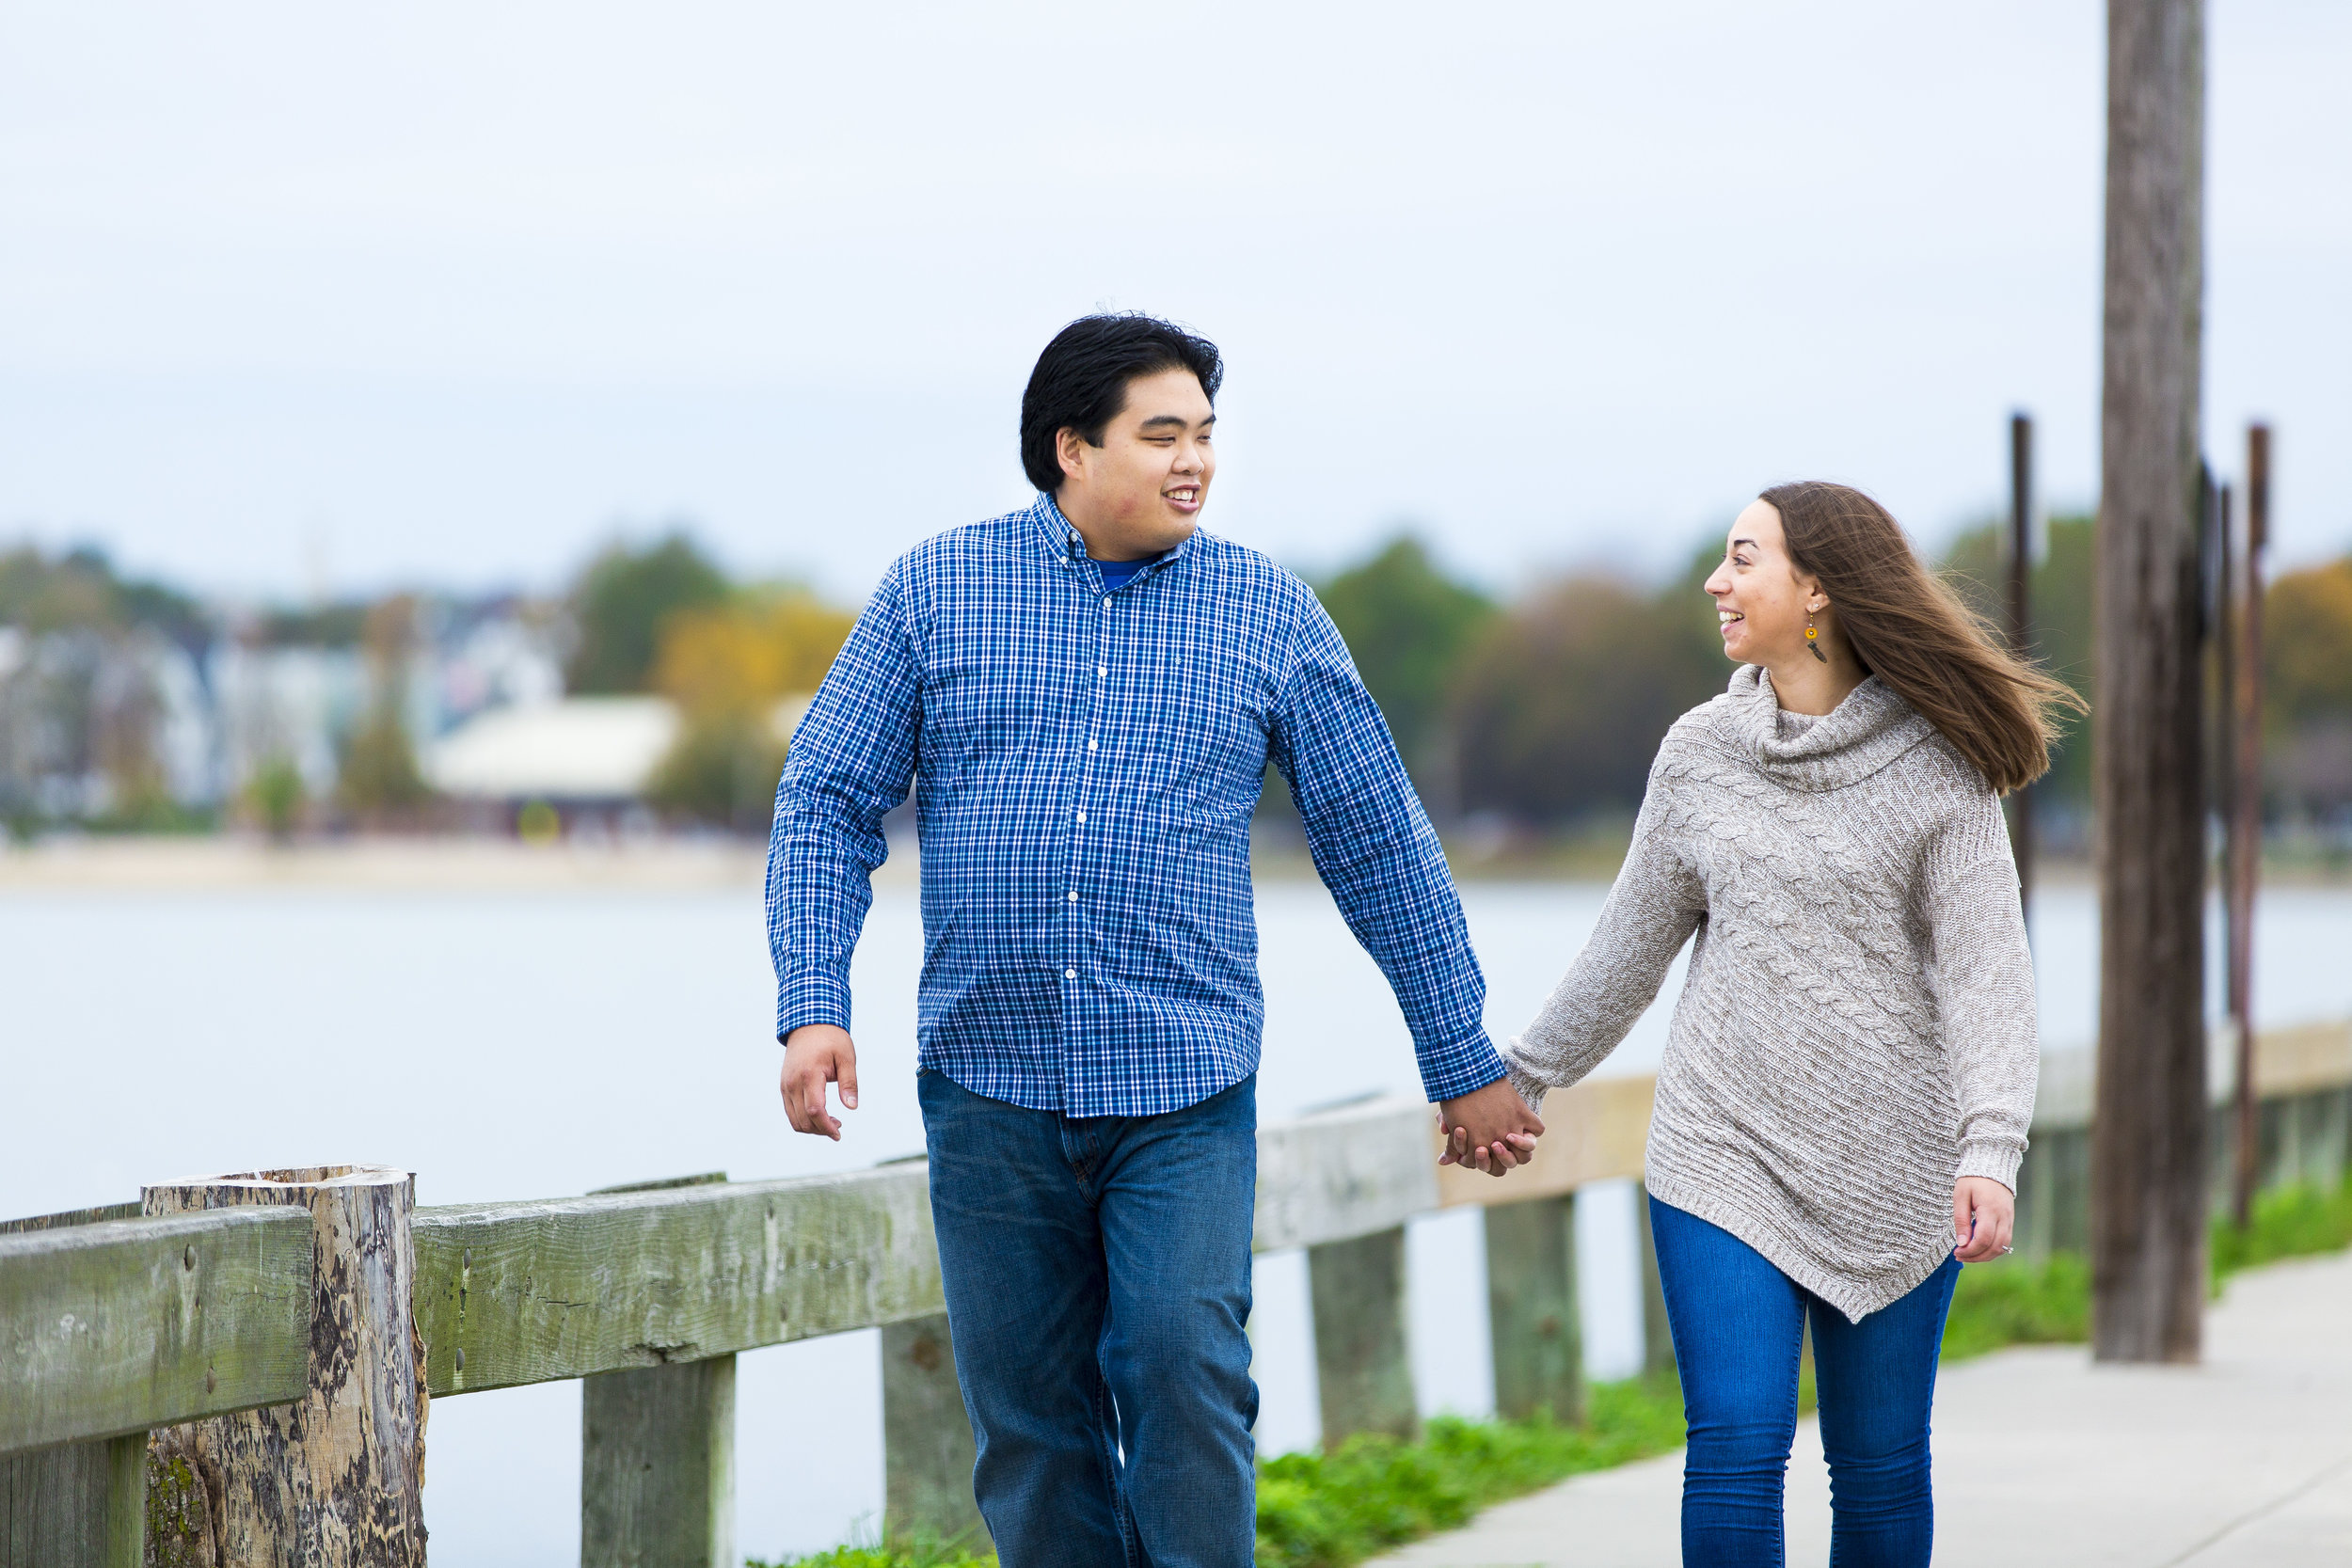 314A3526 Giovanni The Photographer Best Boston Wedding PhotographyErica and Richard's Engagement Session 10-29-17.jpg